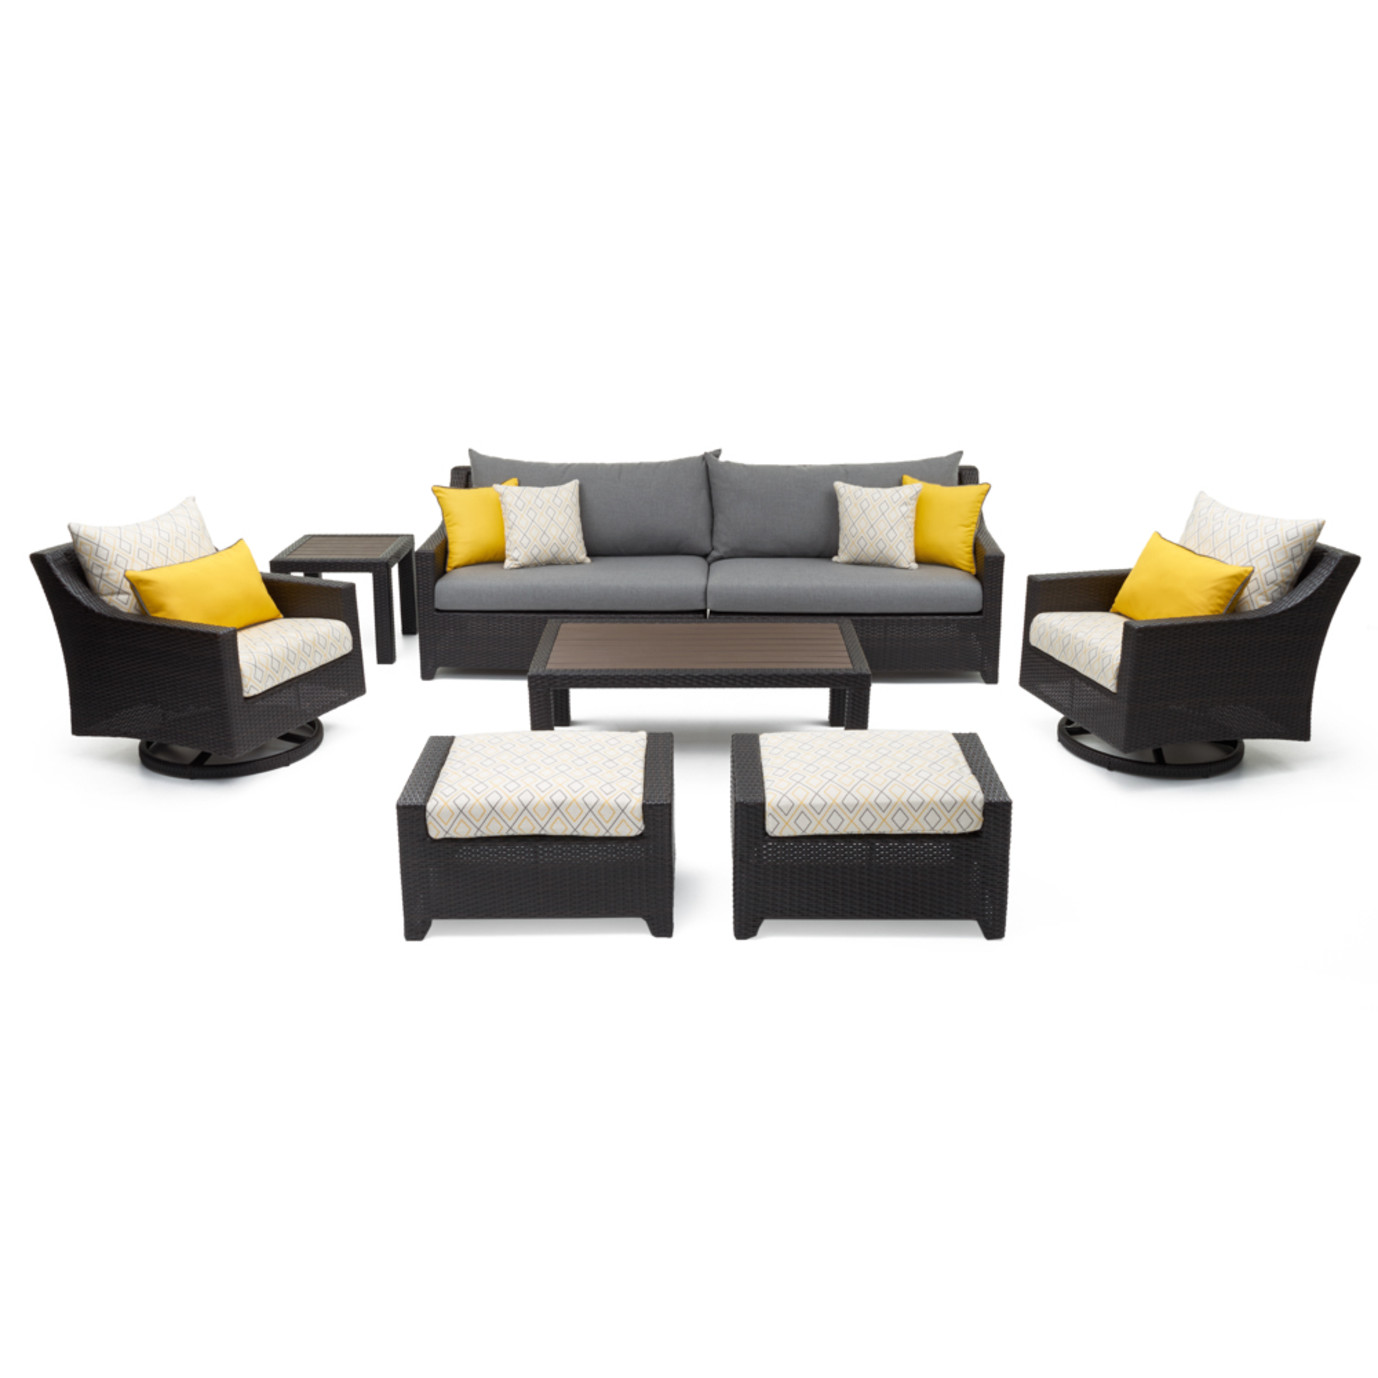 Deco™ 8pc Sofa & Club Chair Set - Sunflower Yellow Design